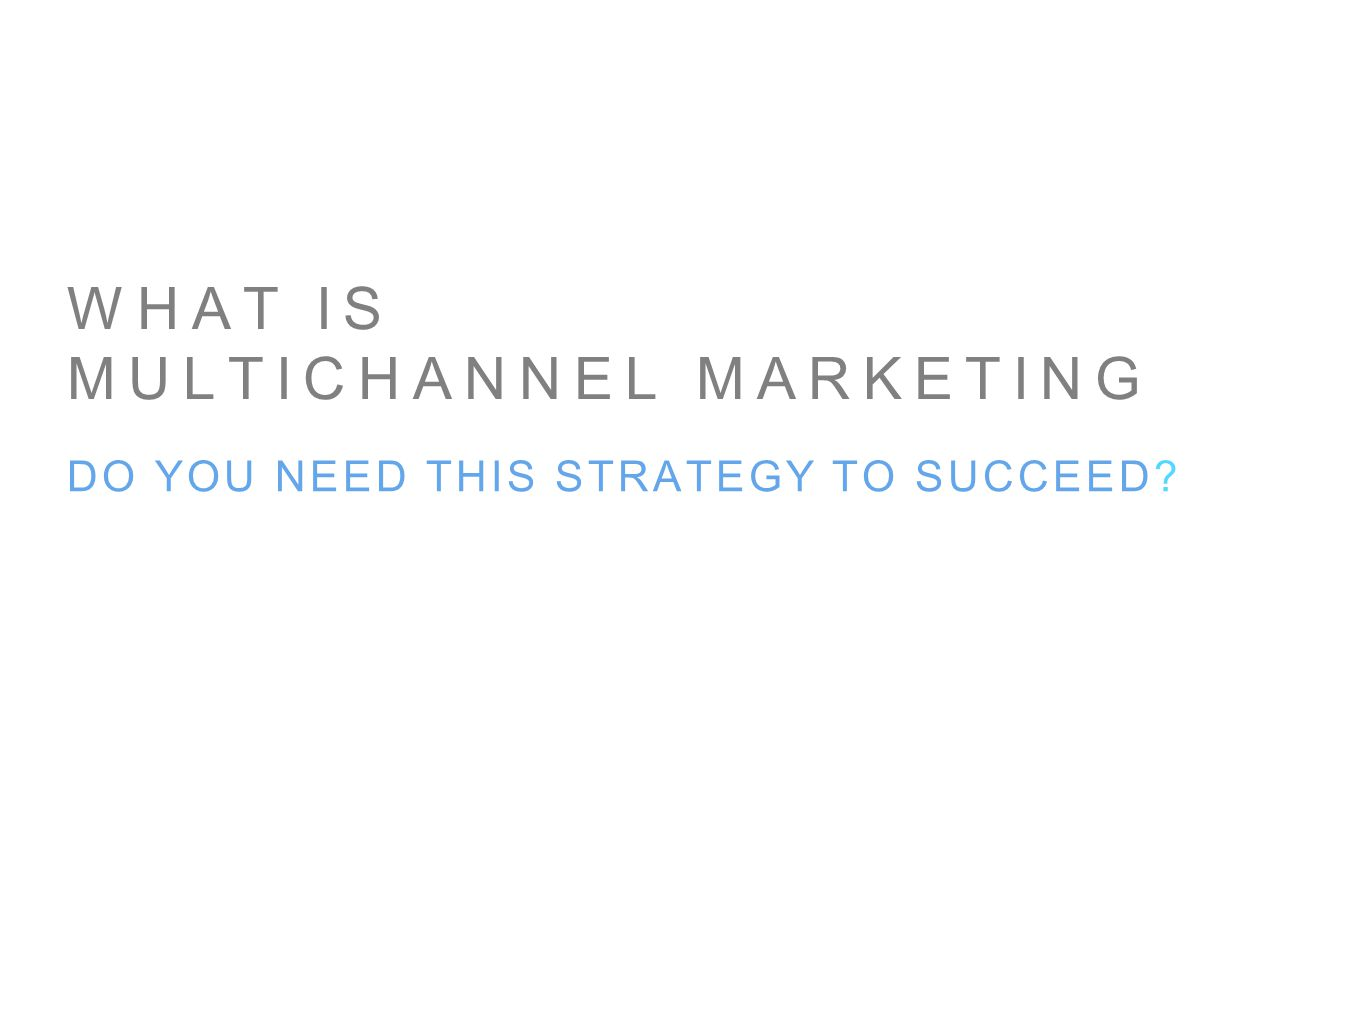 WHAT IS MULTICHANNEL MARKETING DO YOU NEED THIS STRATEGY TO SUCCEED?